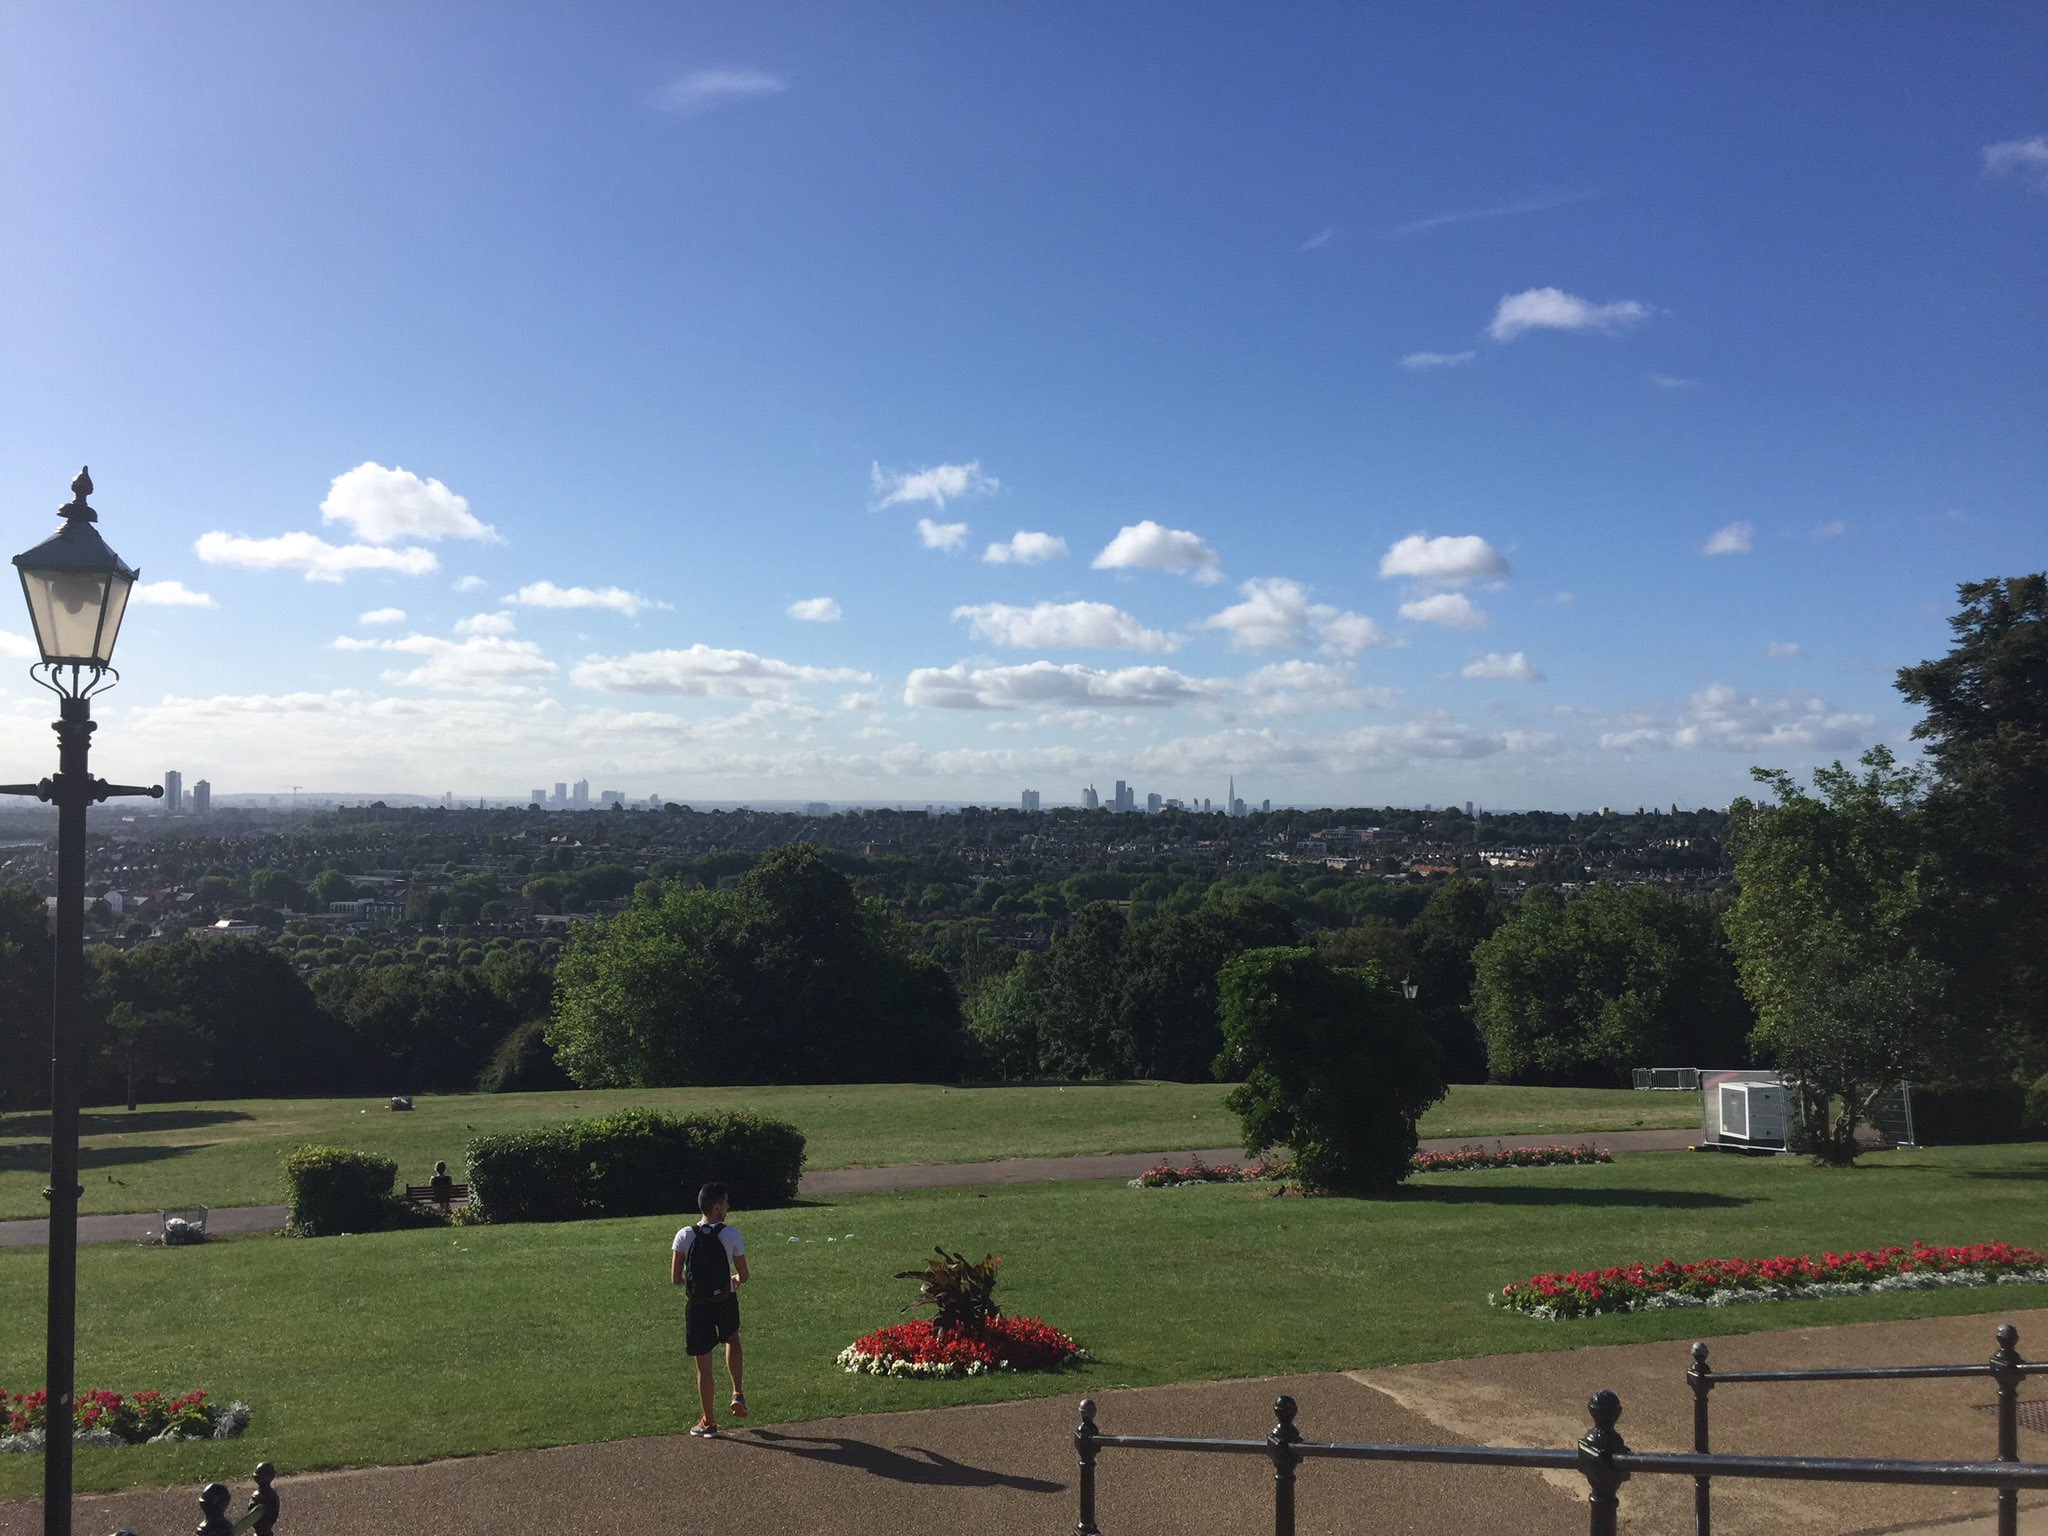 Today's hike/run ... Music by Macklemore... Views by North London's Alexandra Palace https://t.co/K6RWyKEiSD